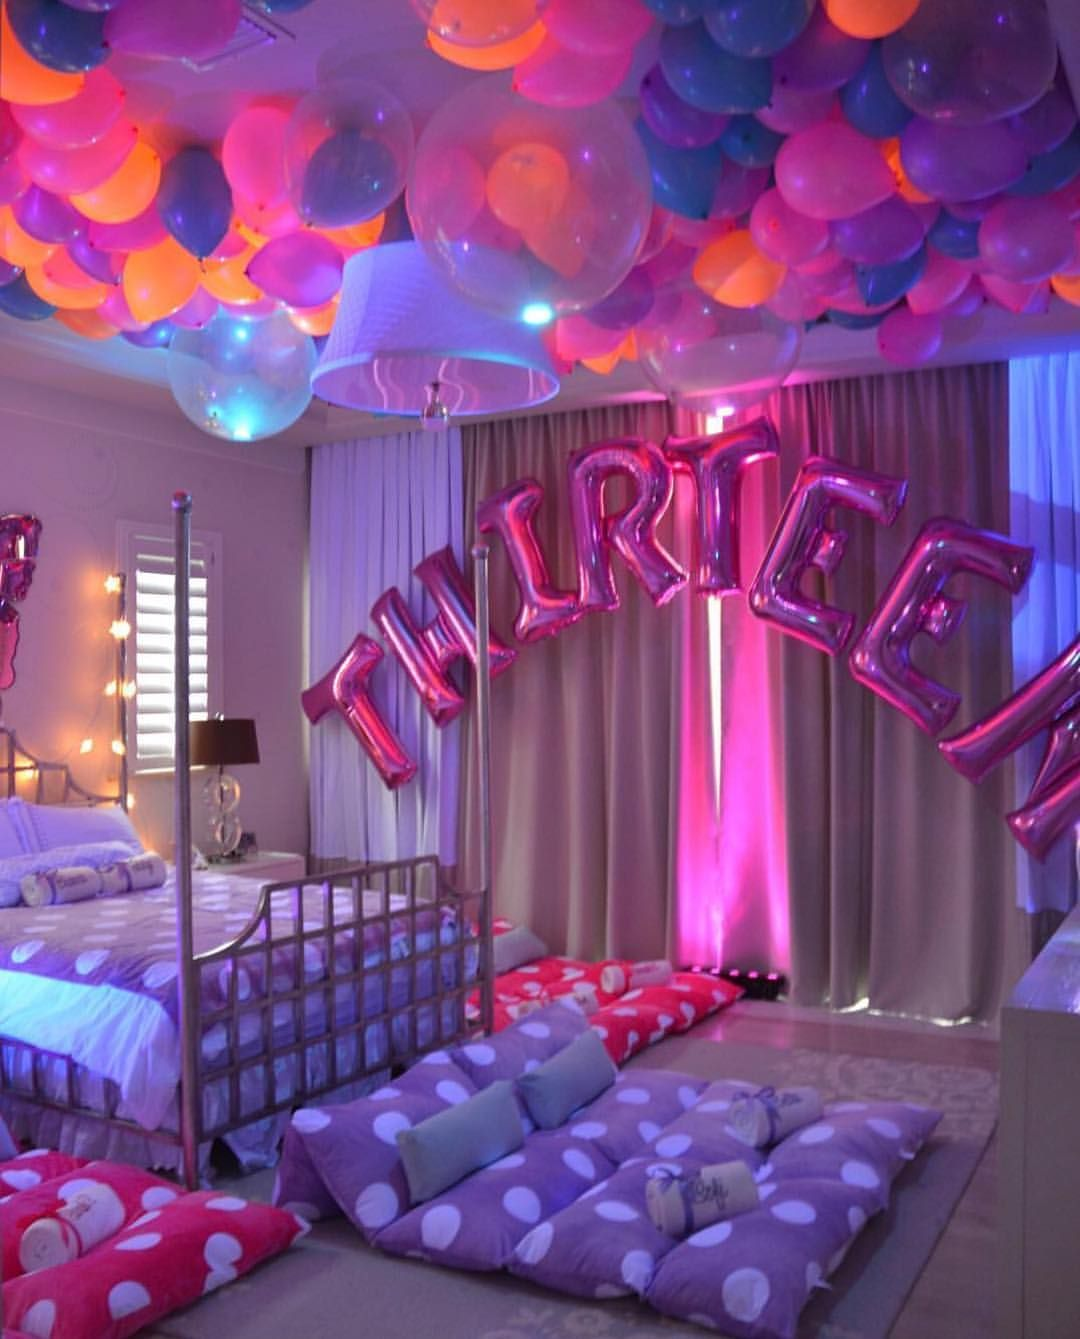 14 Year Old Room Ideas The Cutest Birthday Look For A 13 Year Old Girl By Center